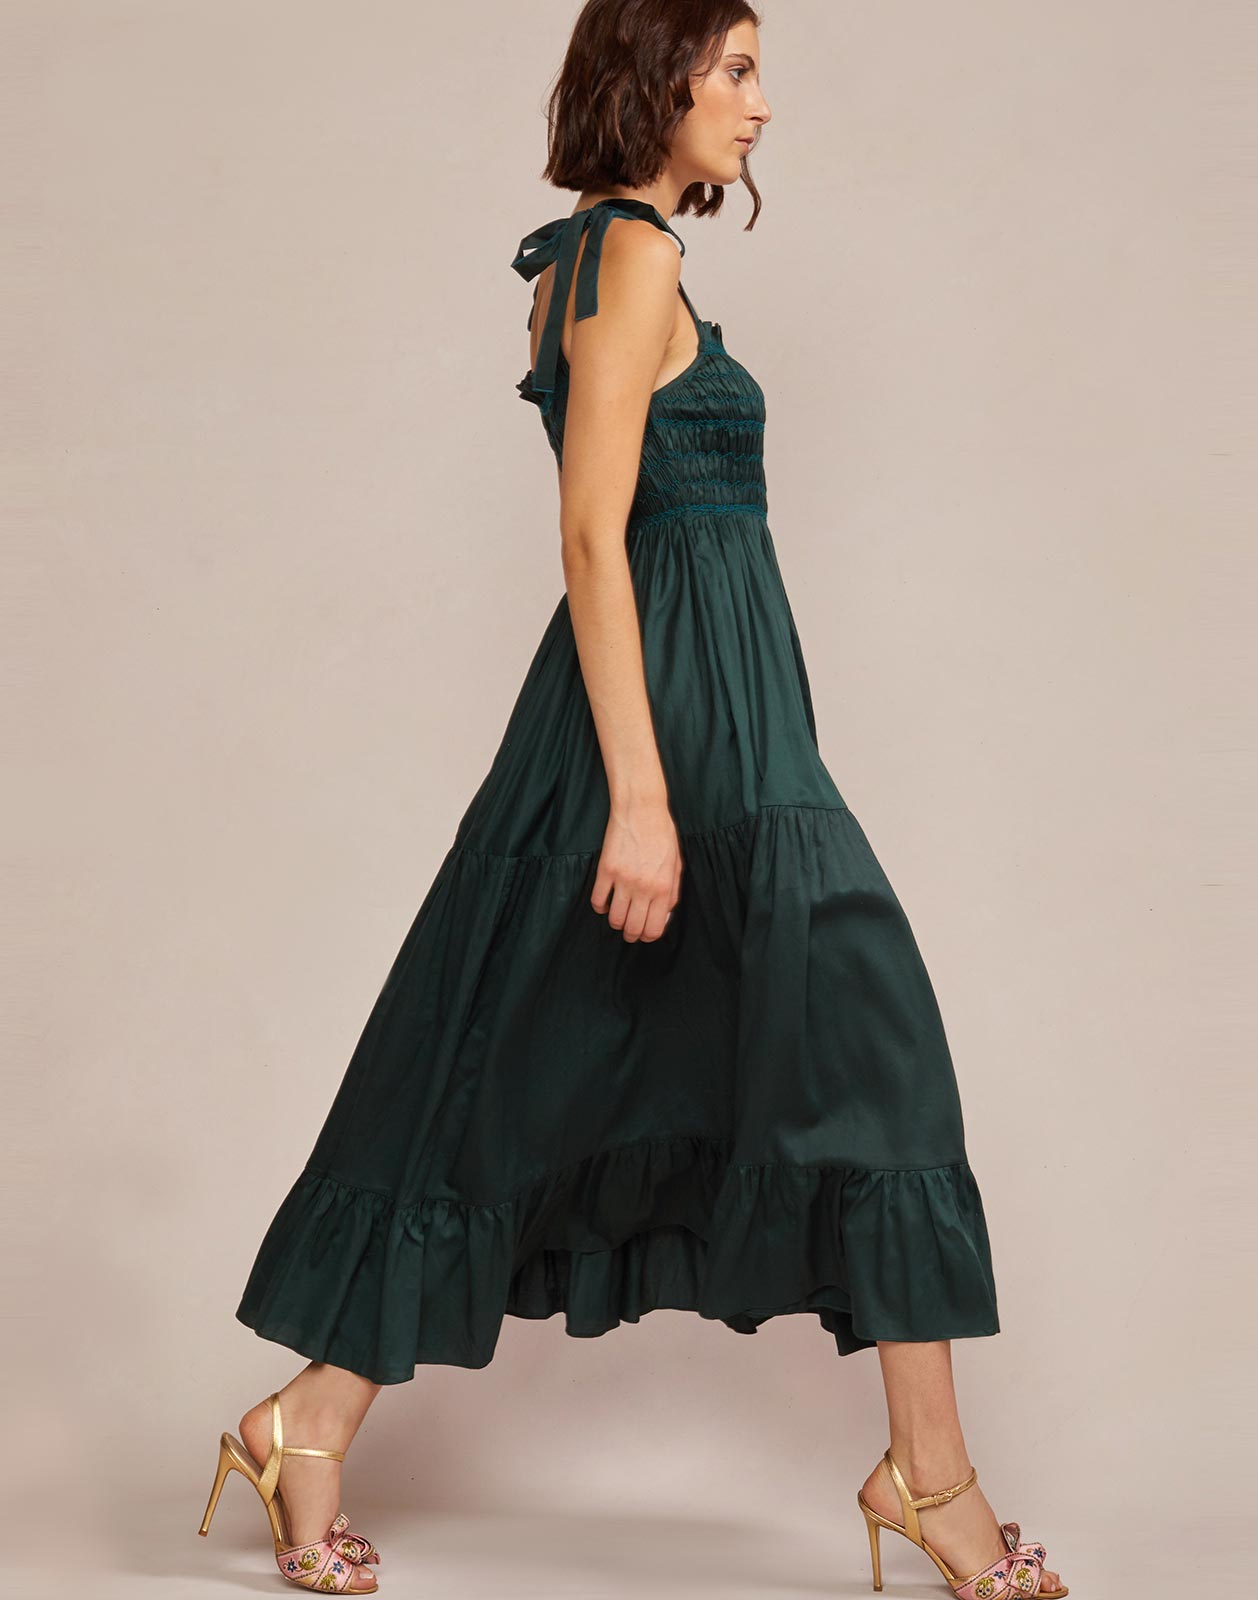 Side view of tiered skirt maxi dress